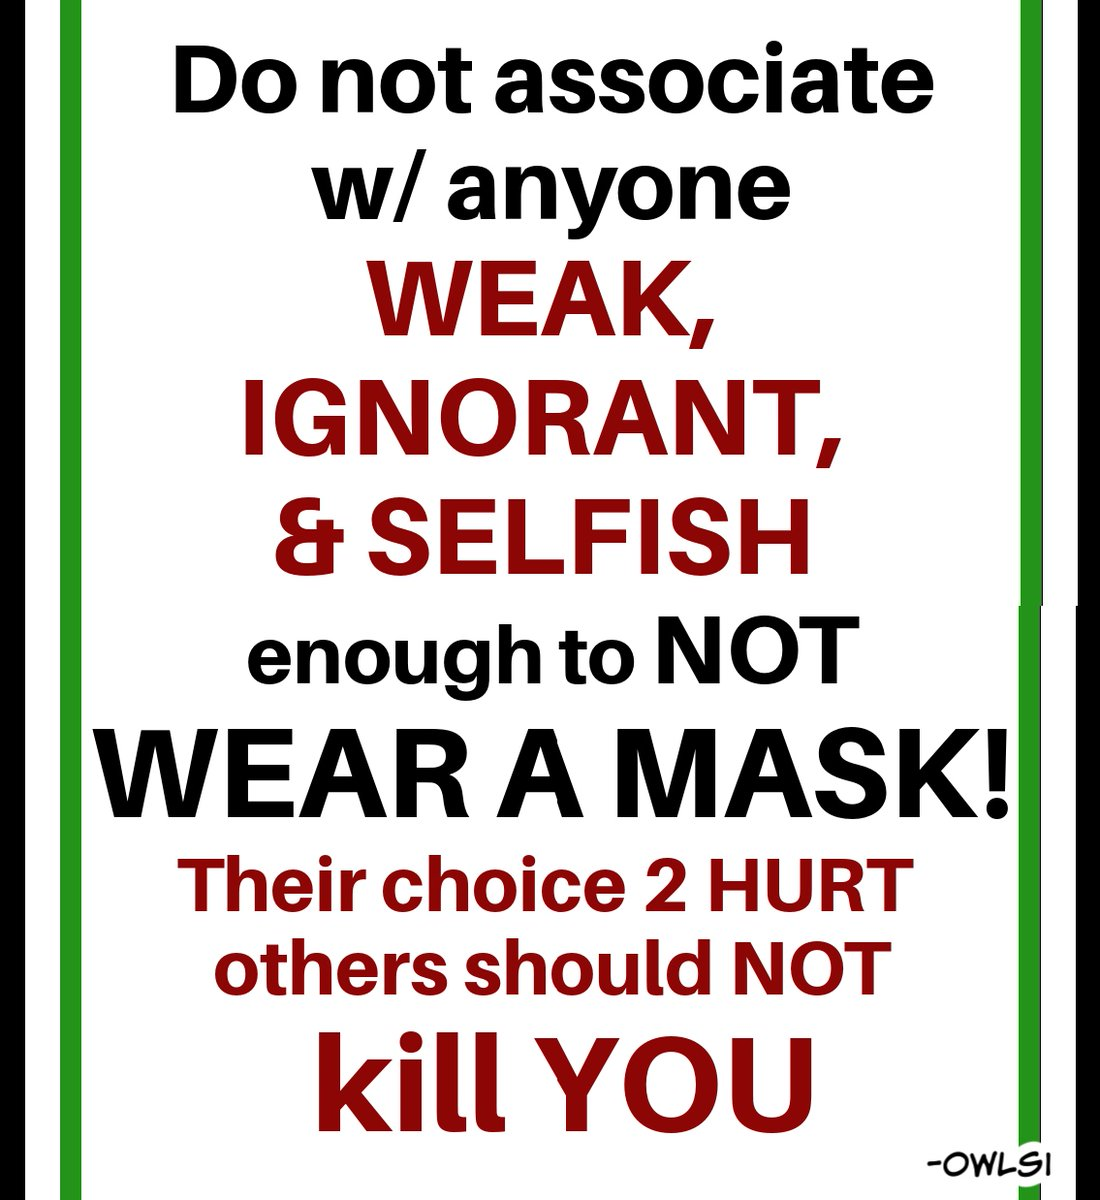 wearing a mask is also a CHANCE🌞 a chance 2 love a chance 2 help a chance 2 TEAM a chance 4 PROGRESS  I'M SO THANKFUL for this chance  ANYONE making MASK-WEARING a political thing??? the truest anti-USA >IDIOT w/o a cause  #idiotsGONEwild #BLM #LGBTQ #MaskUp #republicans #trump